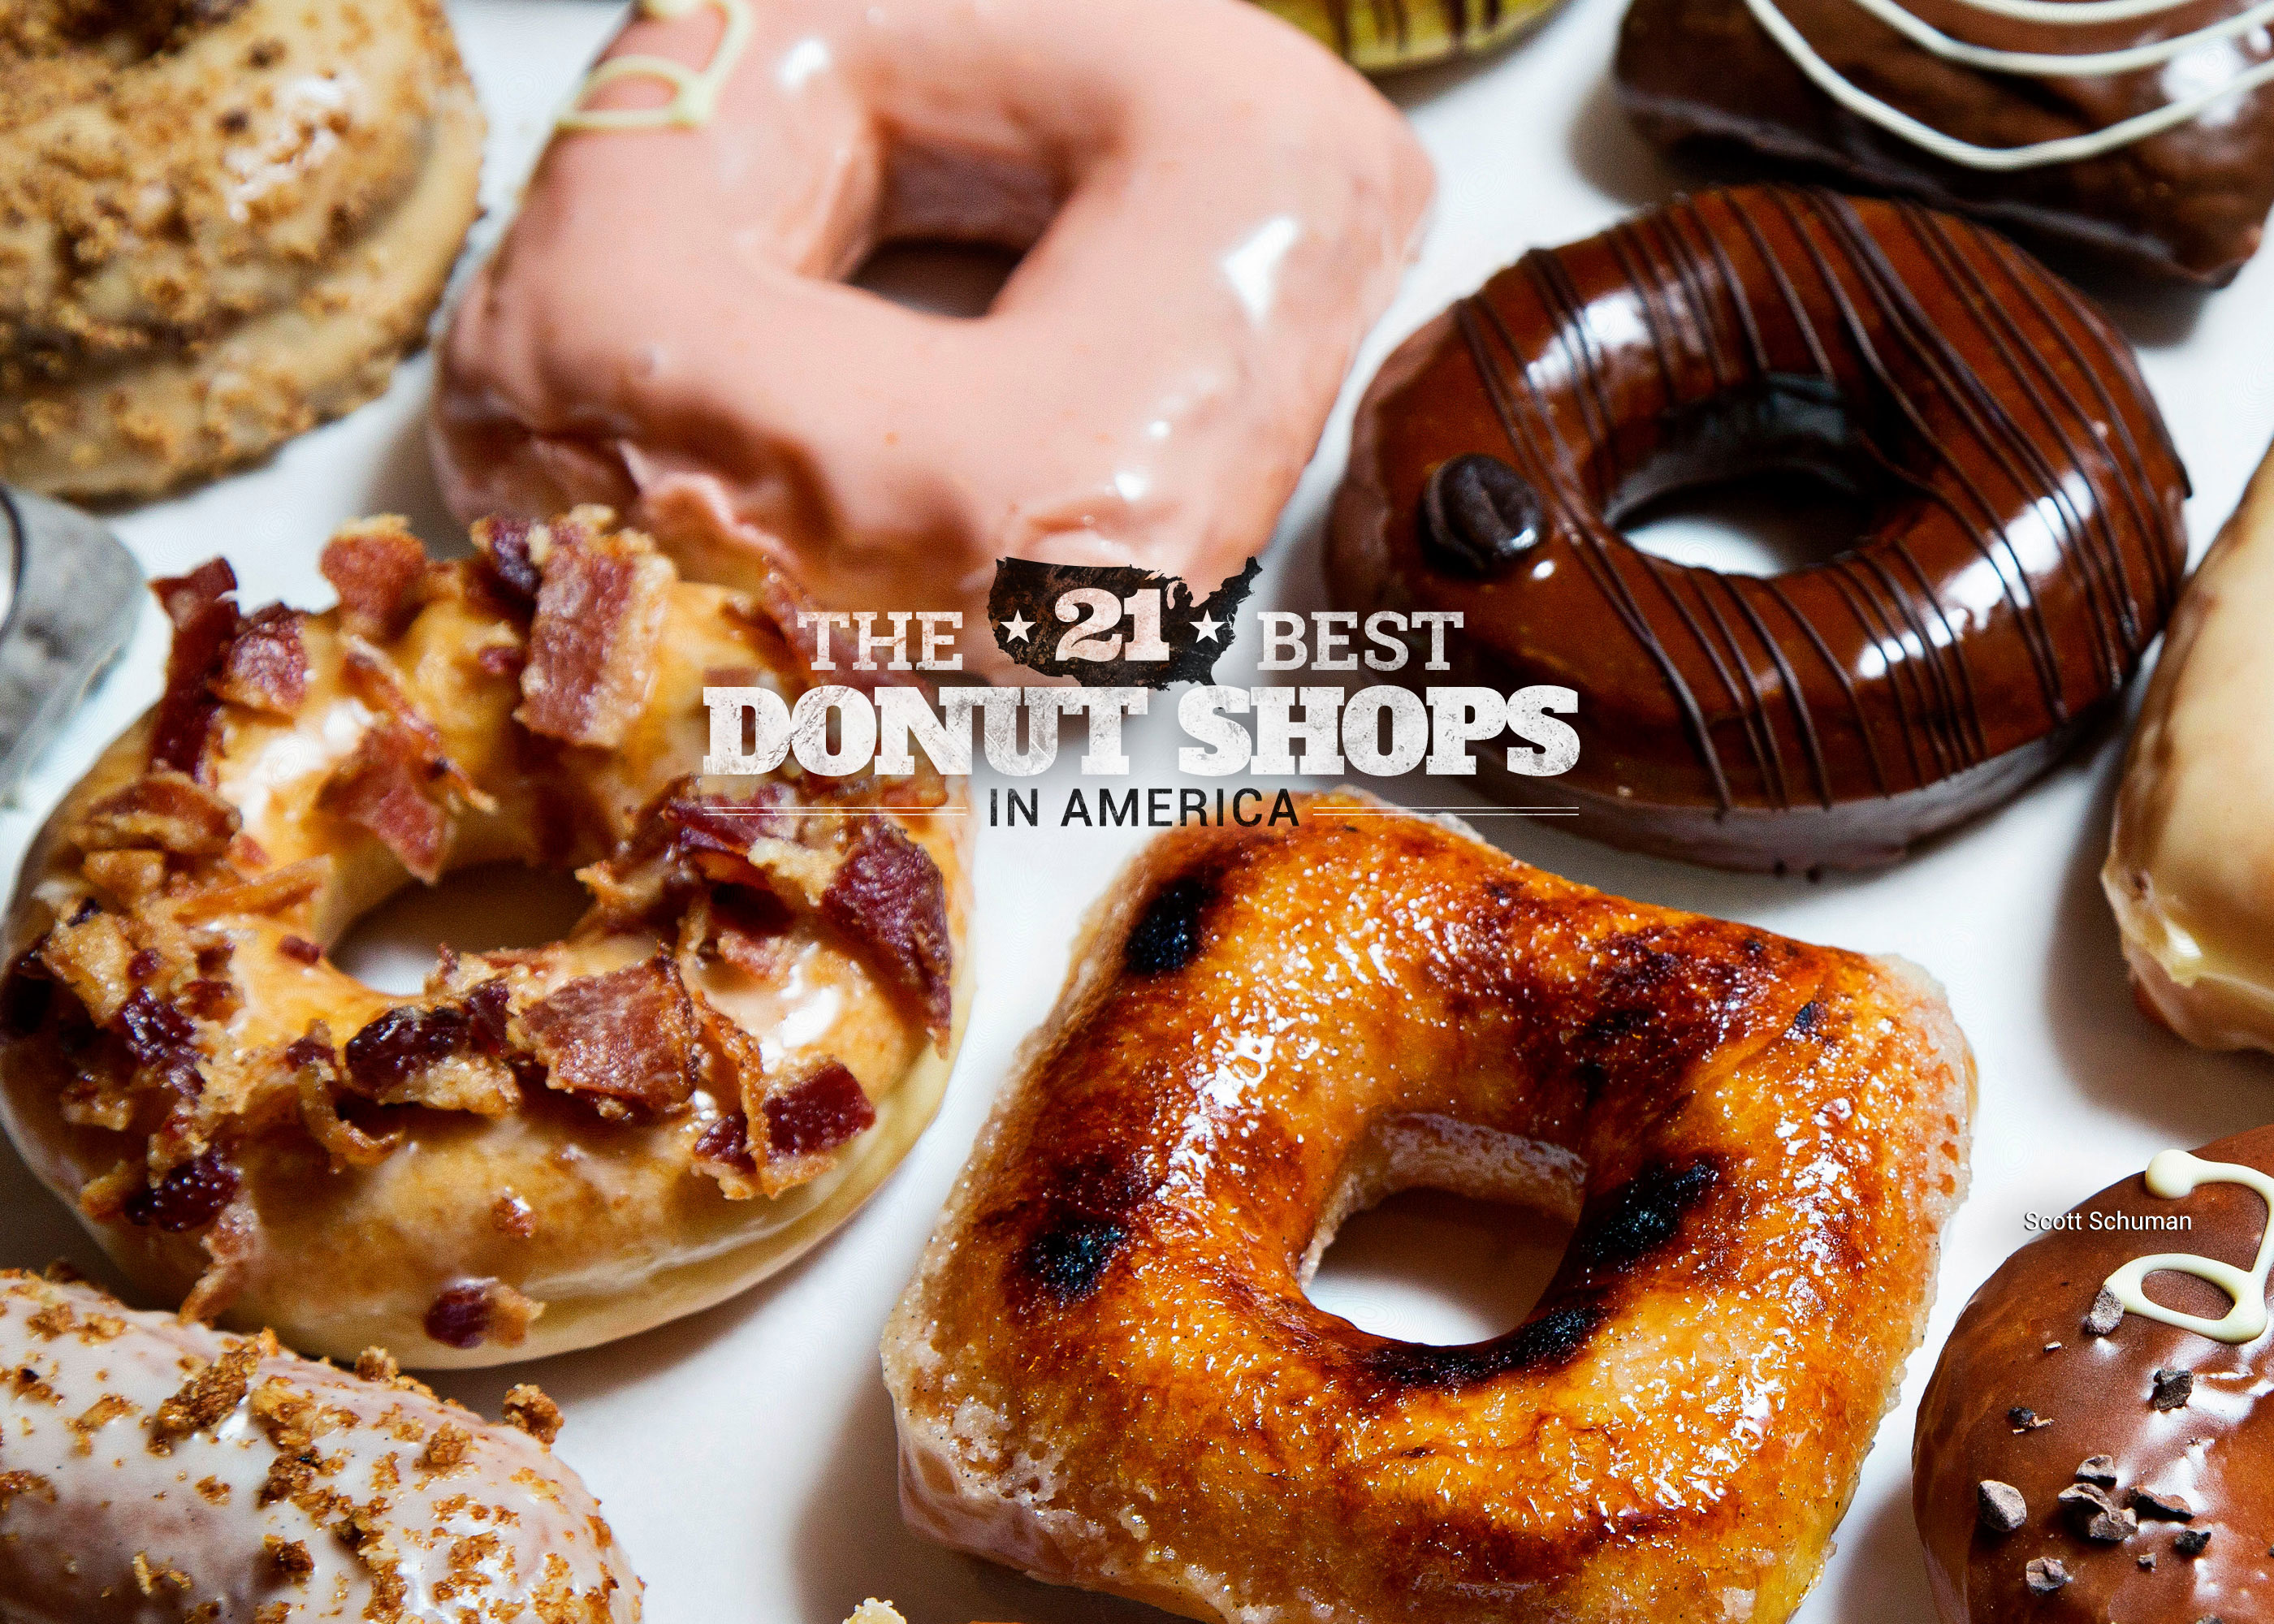 The 31 Best Donut Shops in America (With images) | Donut